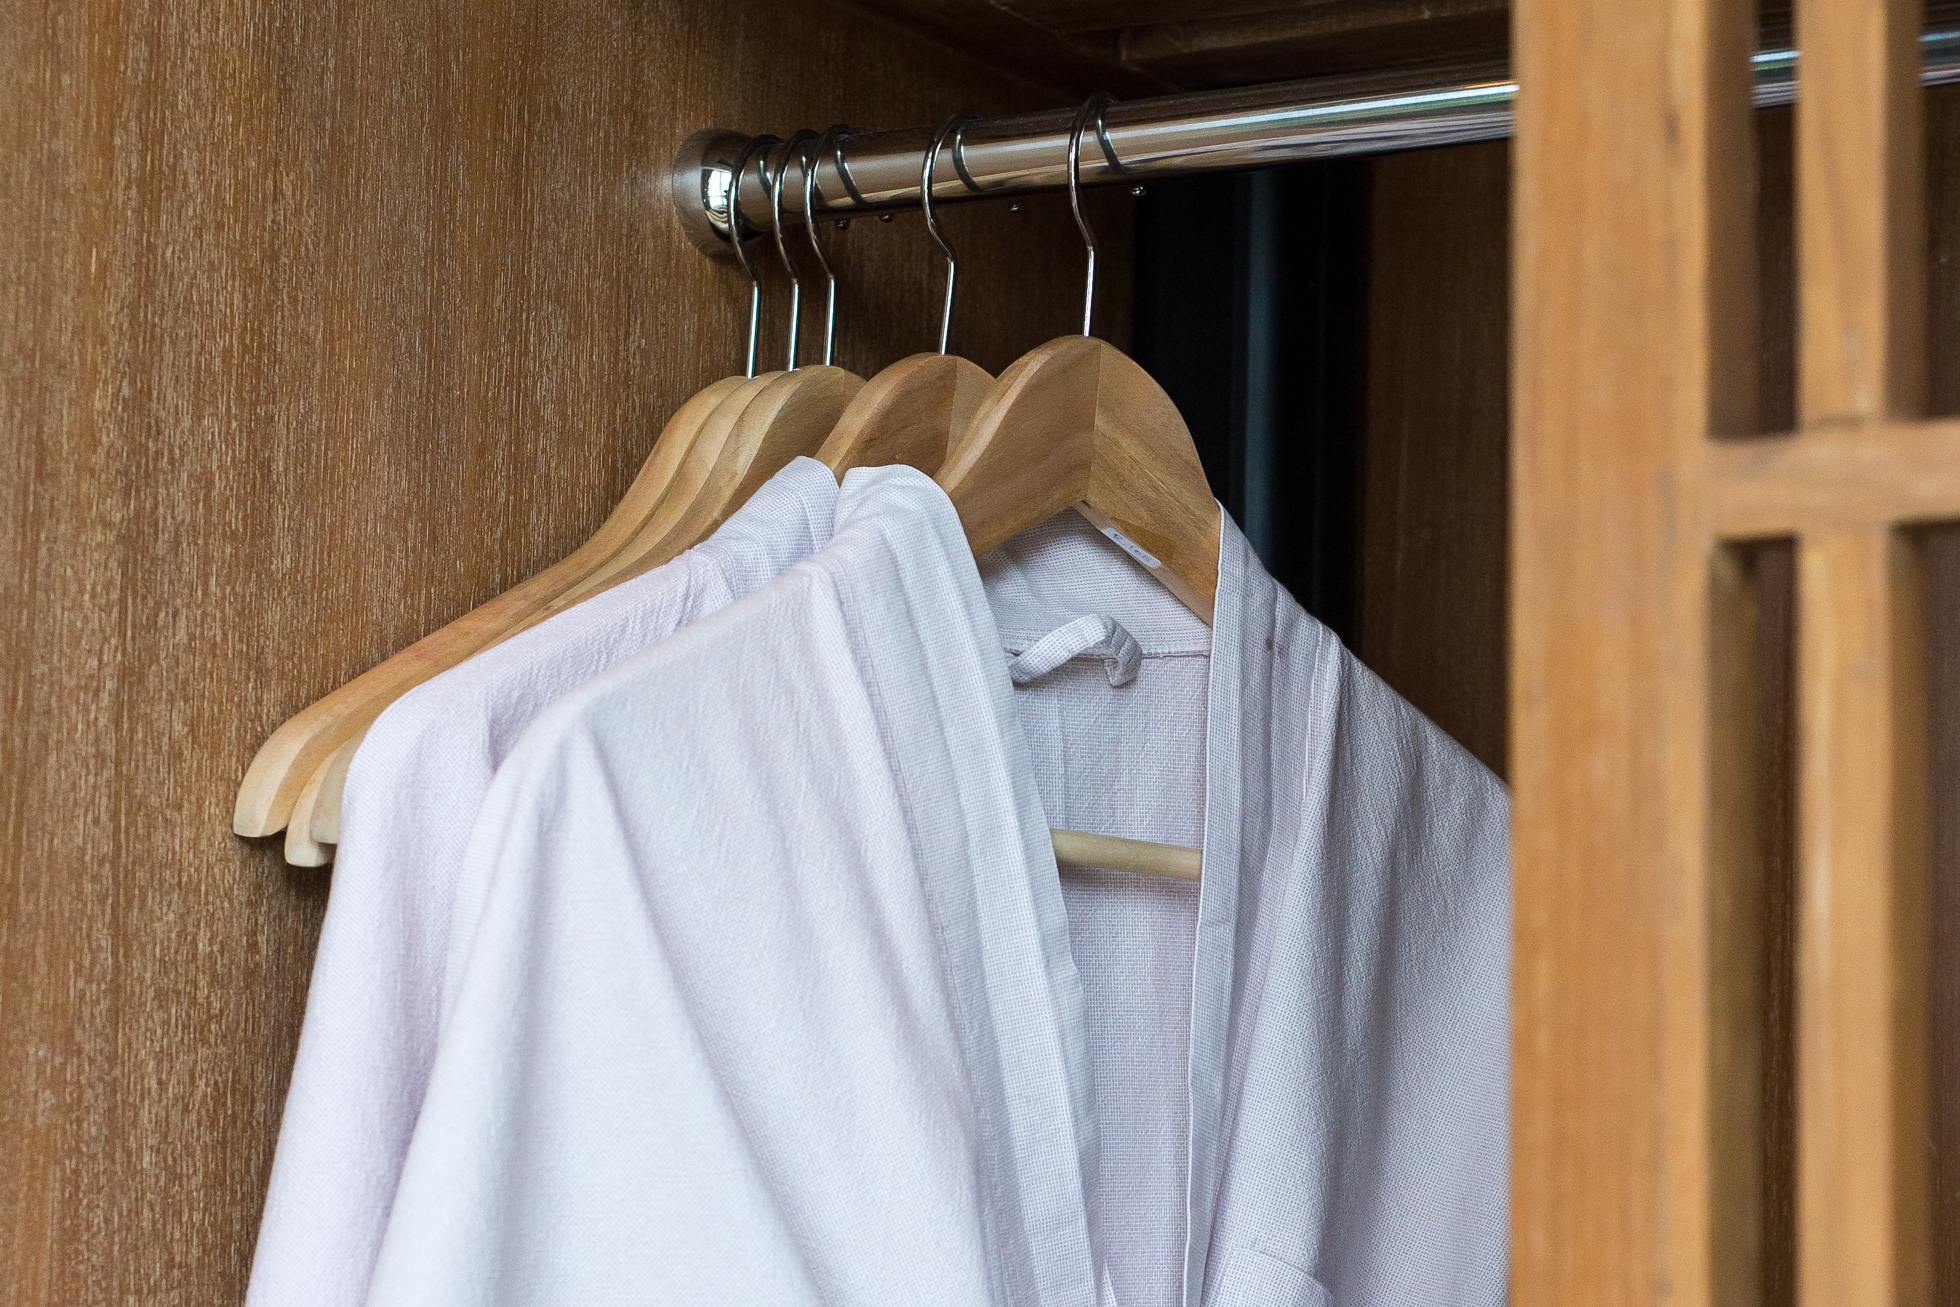 White cotton robes on hangers in a wood closet